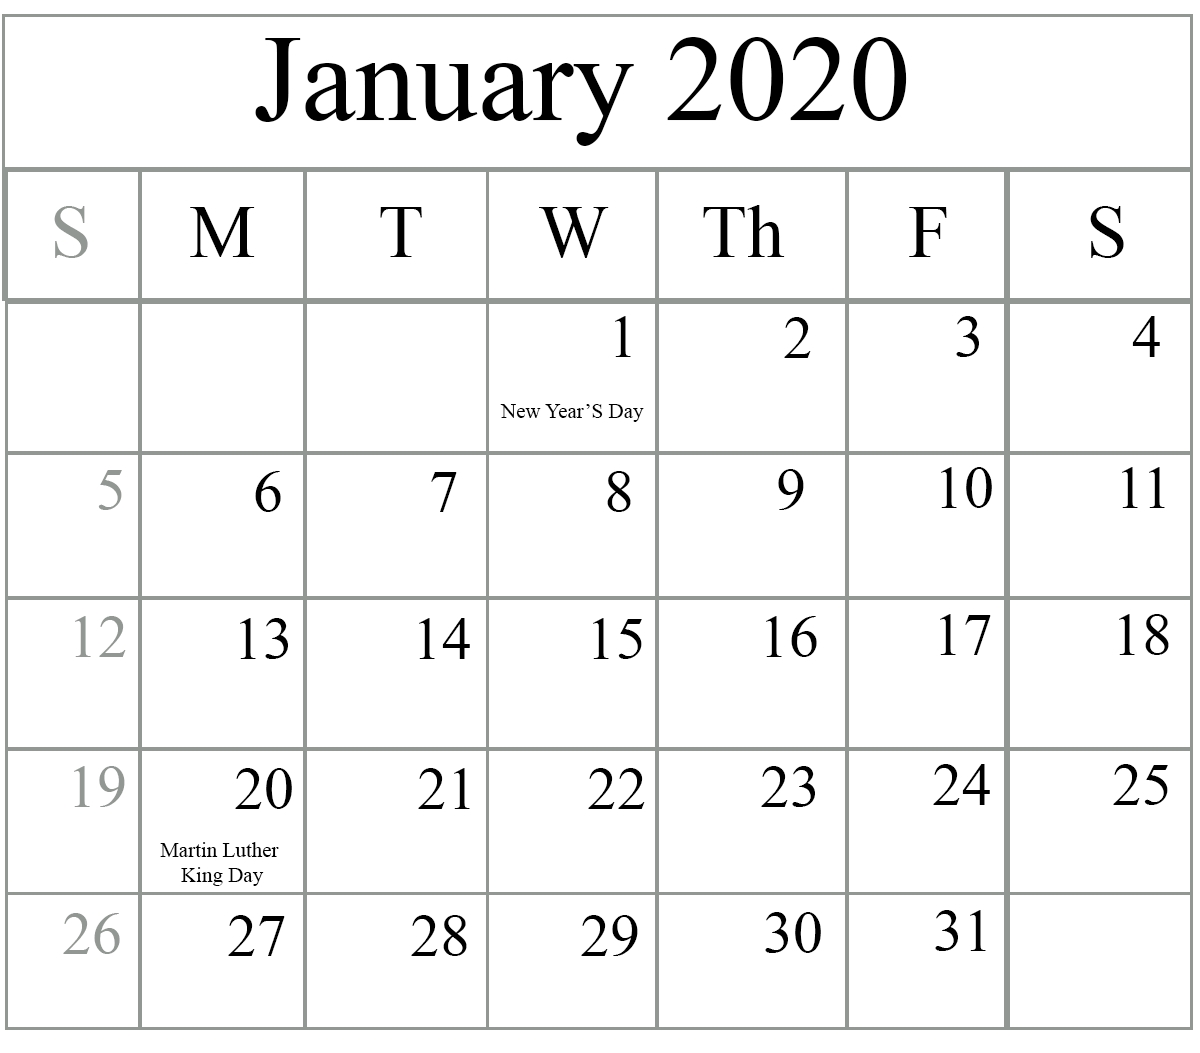 Free January 2020 Printable Calendar In Pdf, Excel & Word with regard to Free 2020Printable Calendars Without Downloading